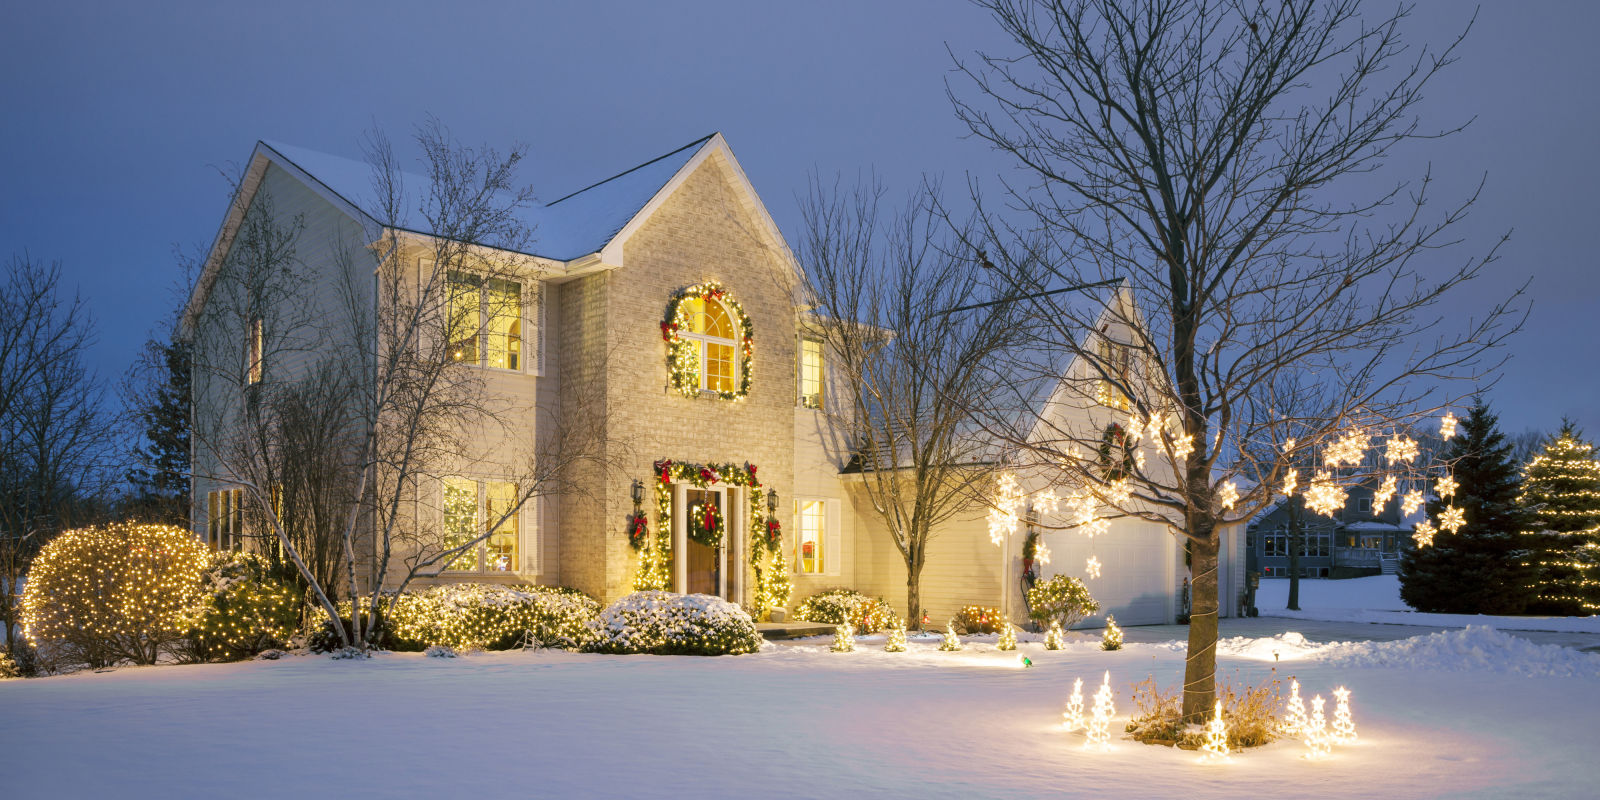 20 Outdoor Christmas Light Decoration Ideas